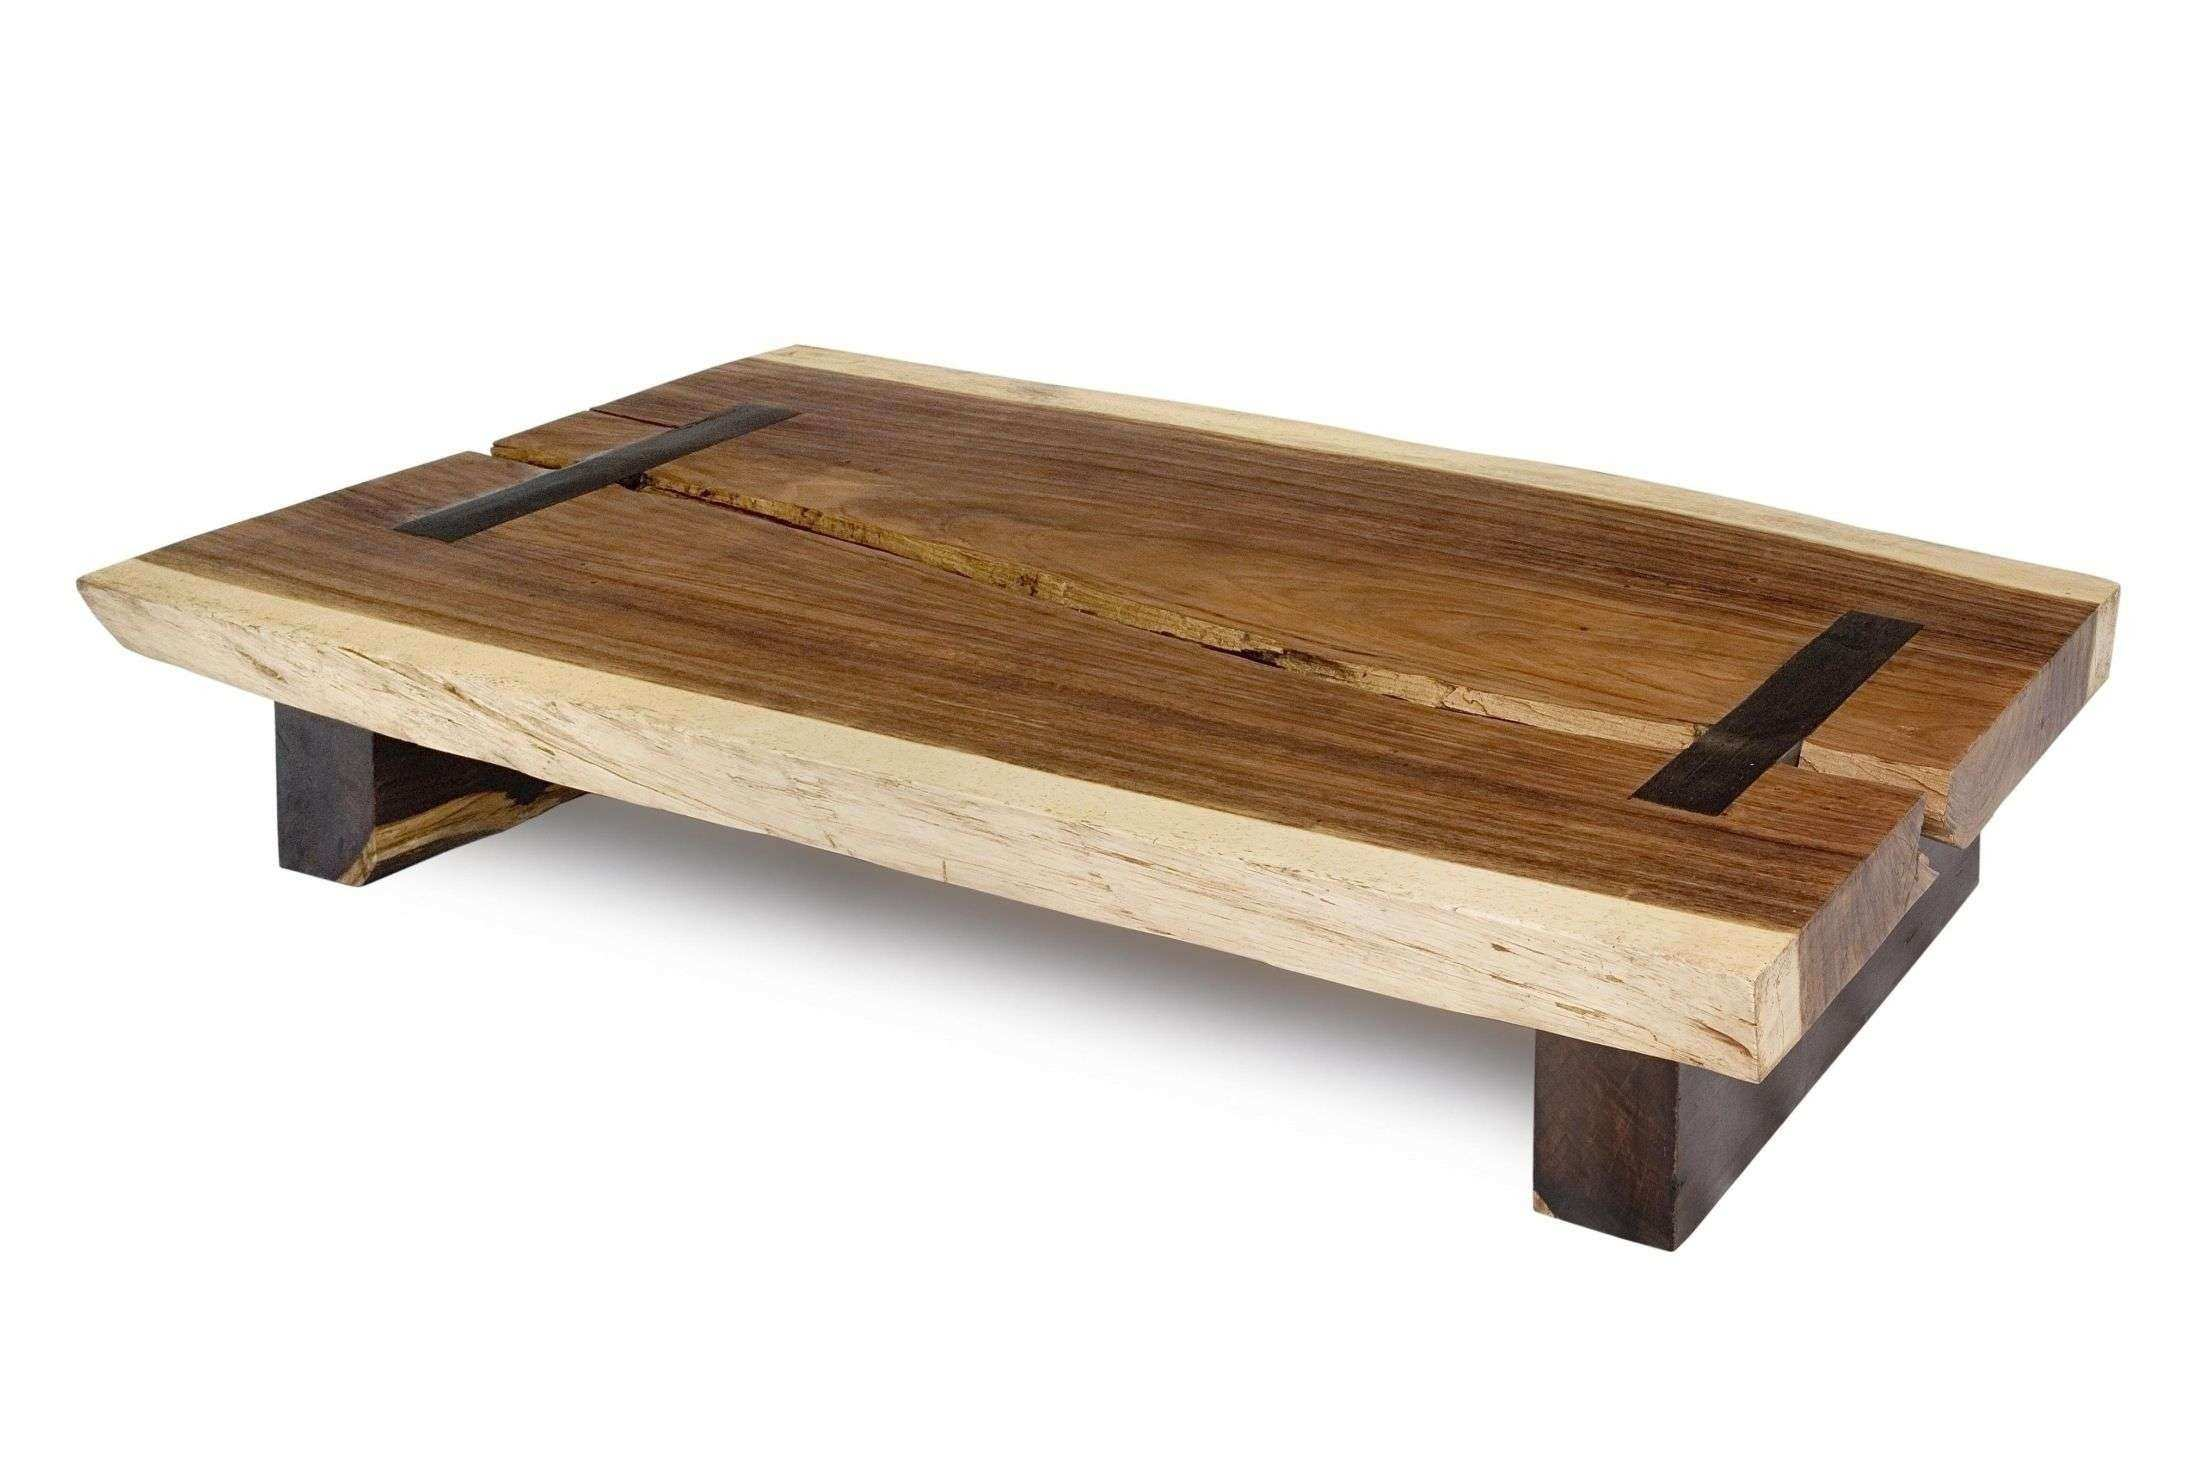 Two Tier Coffee Table Inspirational Wood Coffee Table with Storage